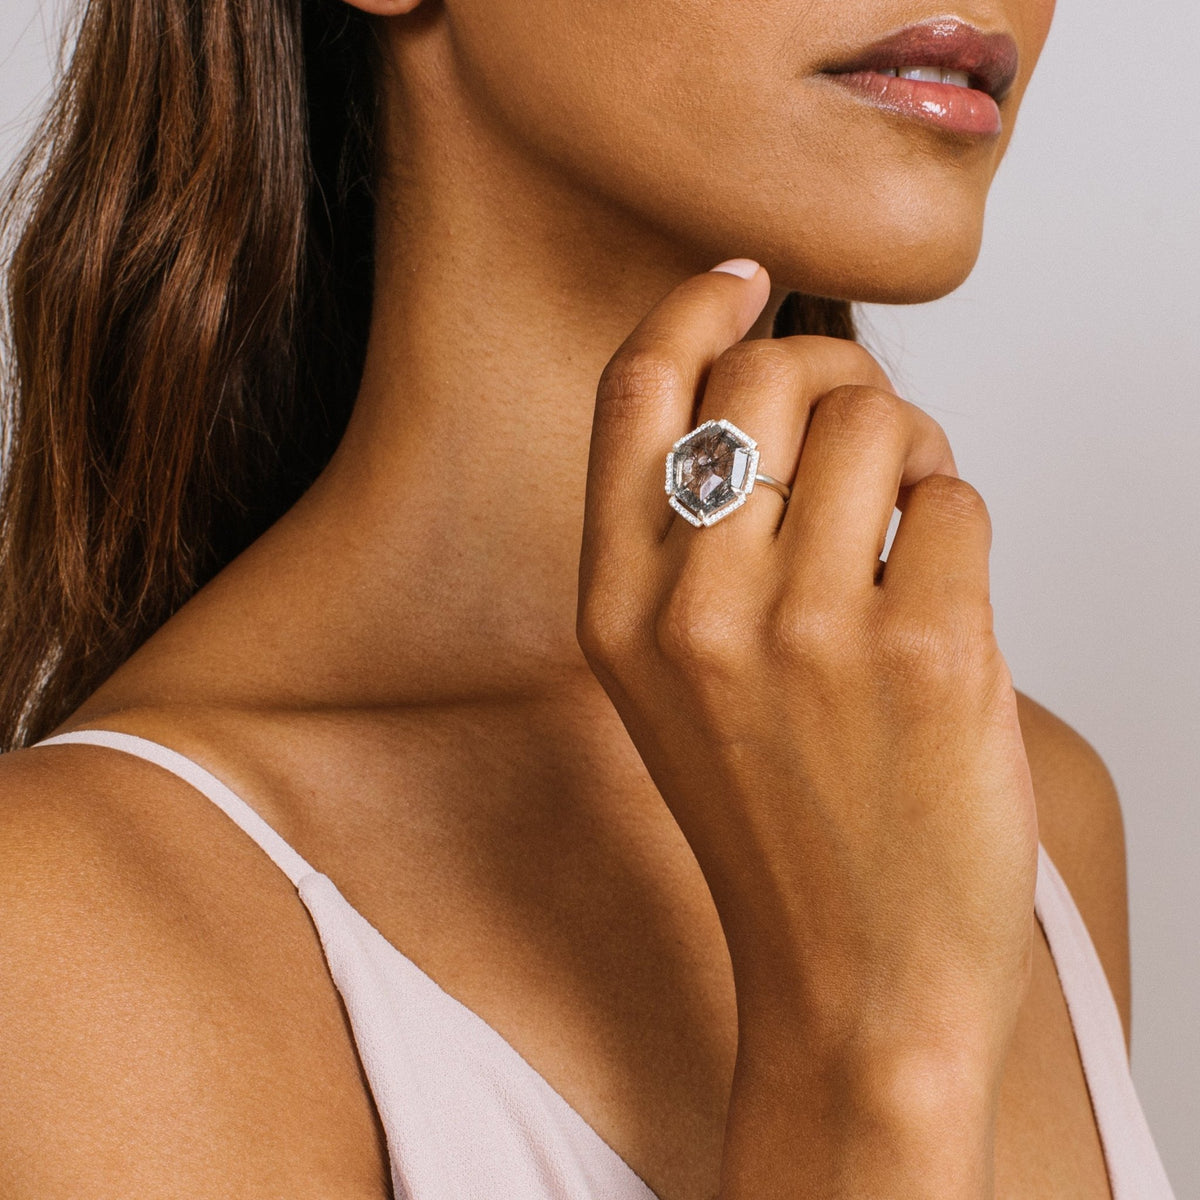 HONOUR SHIELD COCKTAIL RING - BLACK RUTILE QUARTZ & SILVER - SO PRETTY CARA COTTER